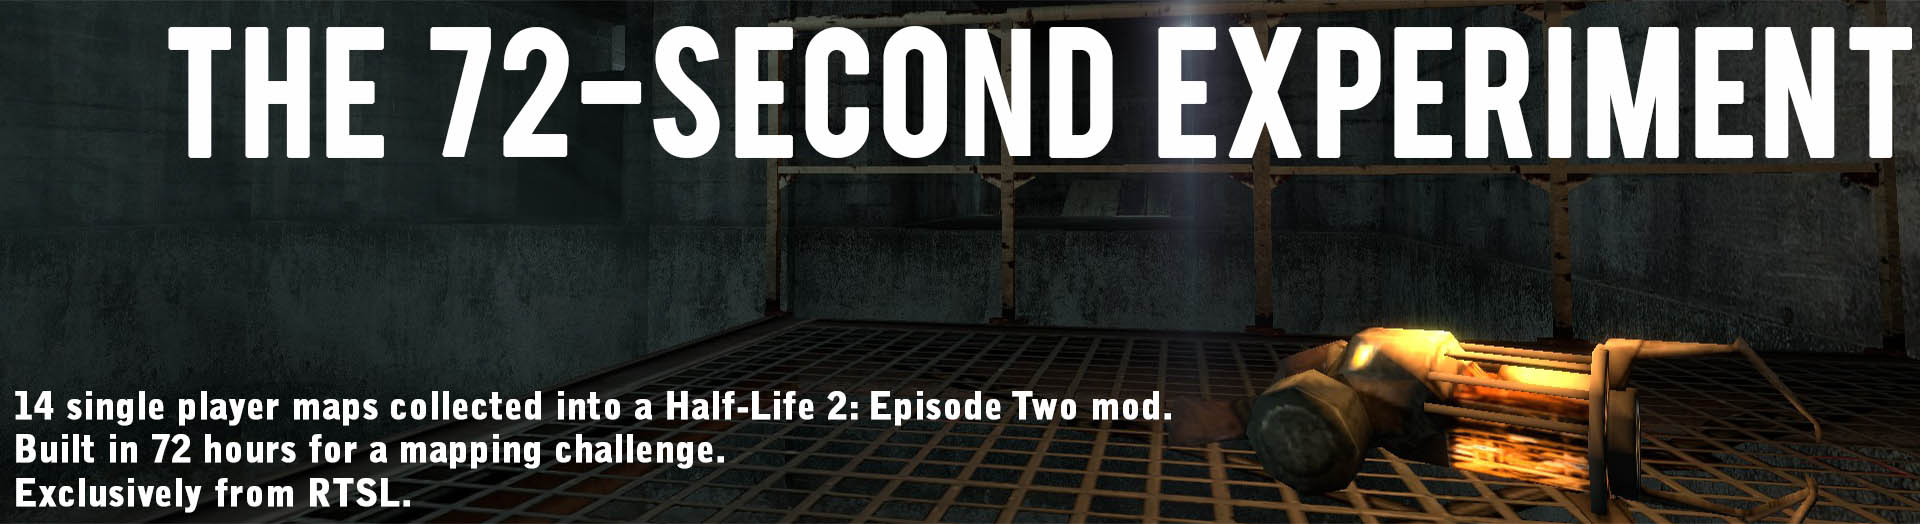 The 72-Second Experiment